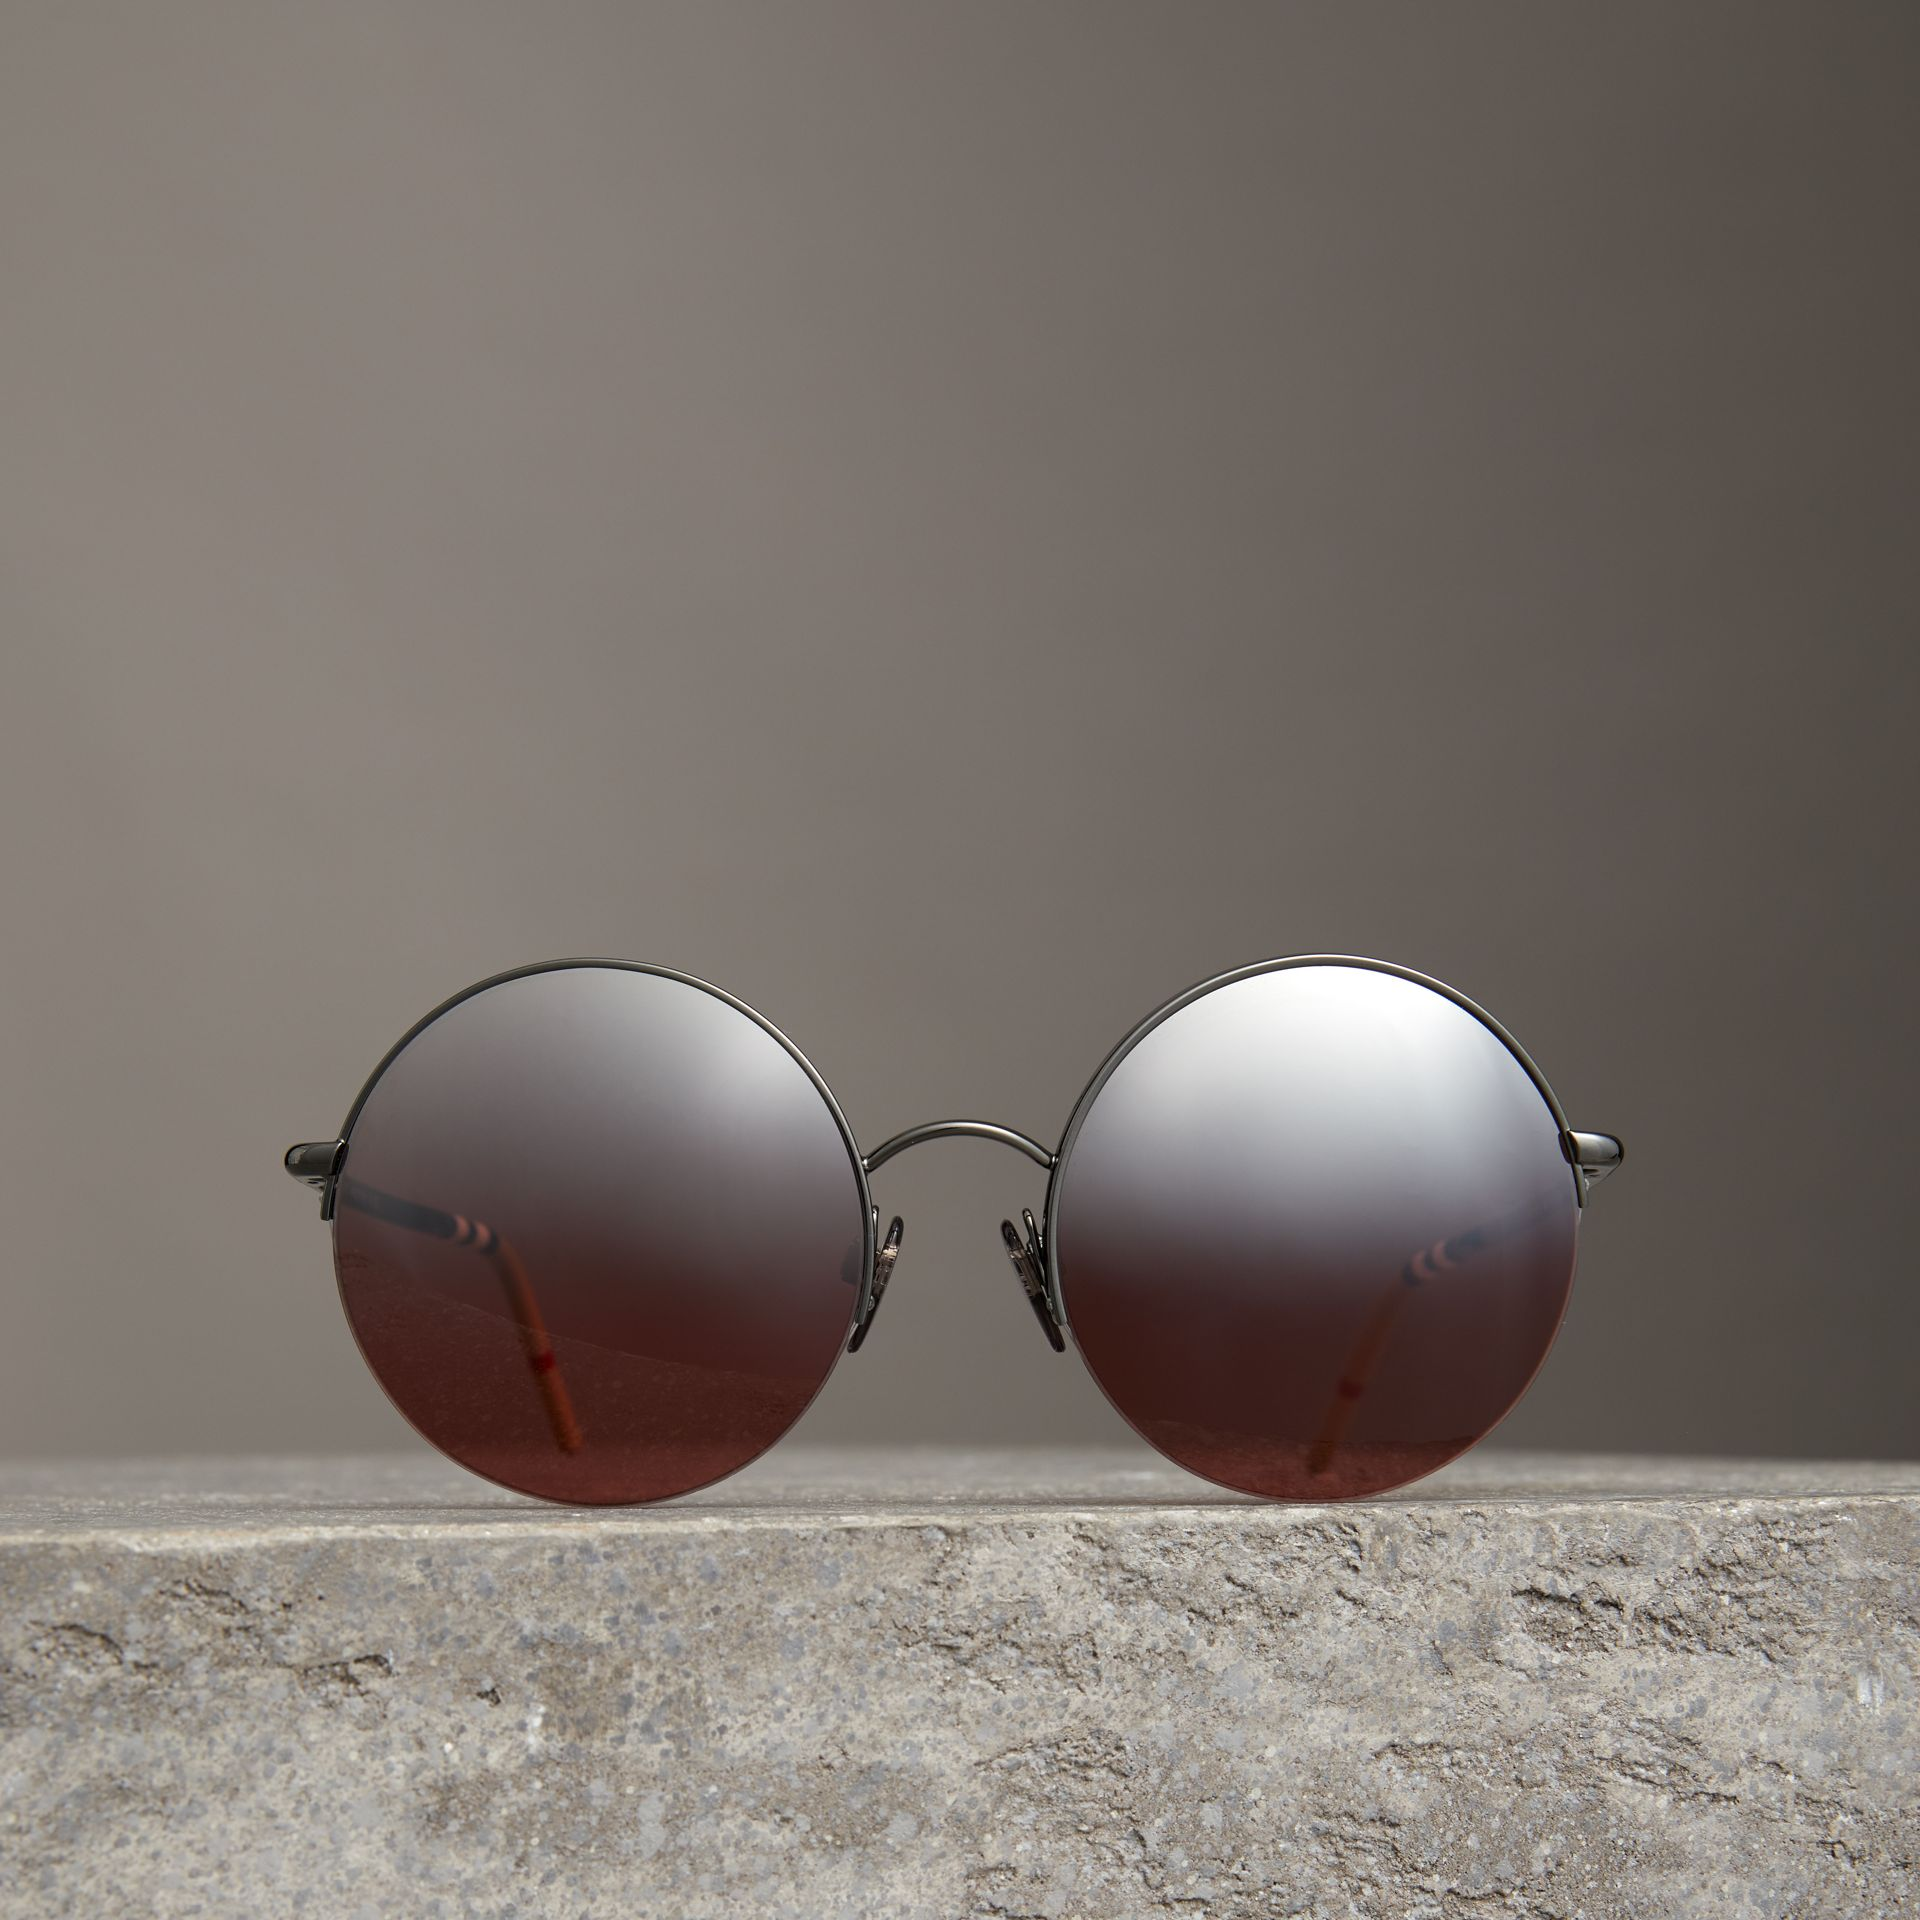 Mirrored Round Frame Sunglasses in Burgundy - Women | Burberry United States - gallery image 3